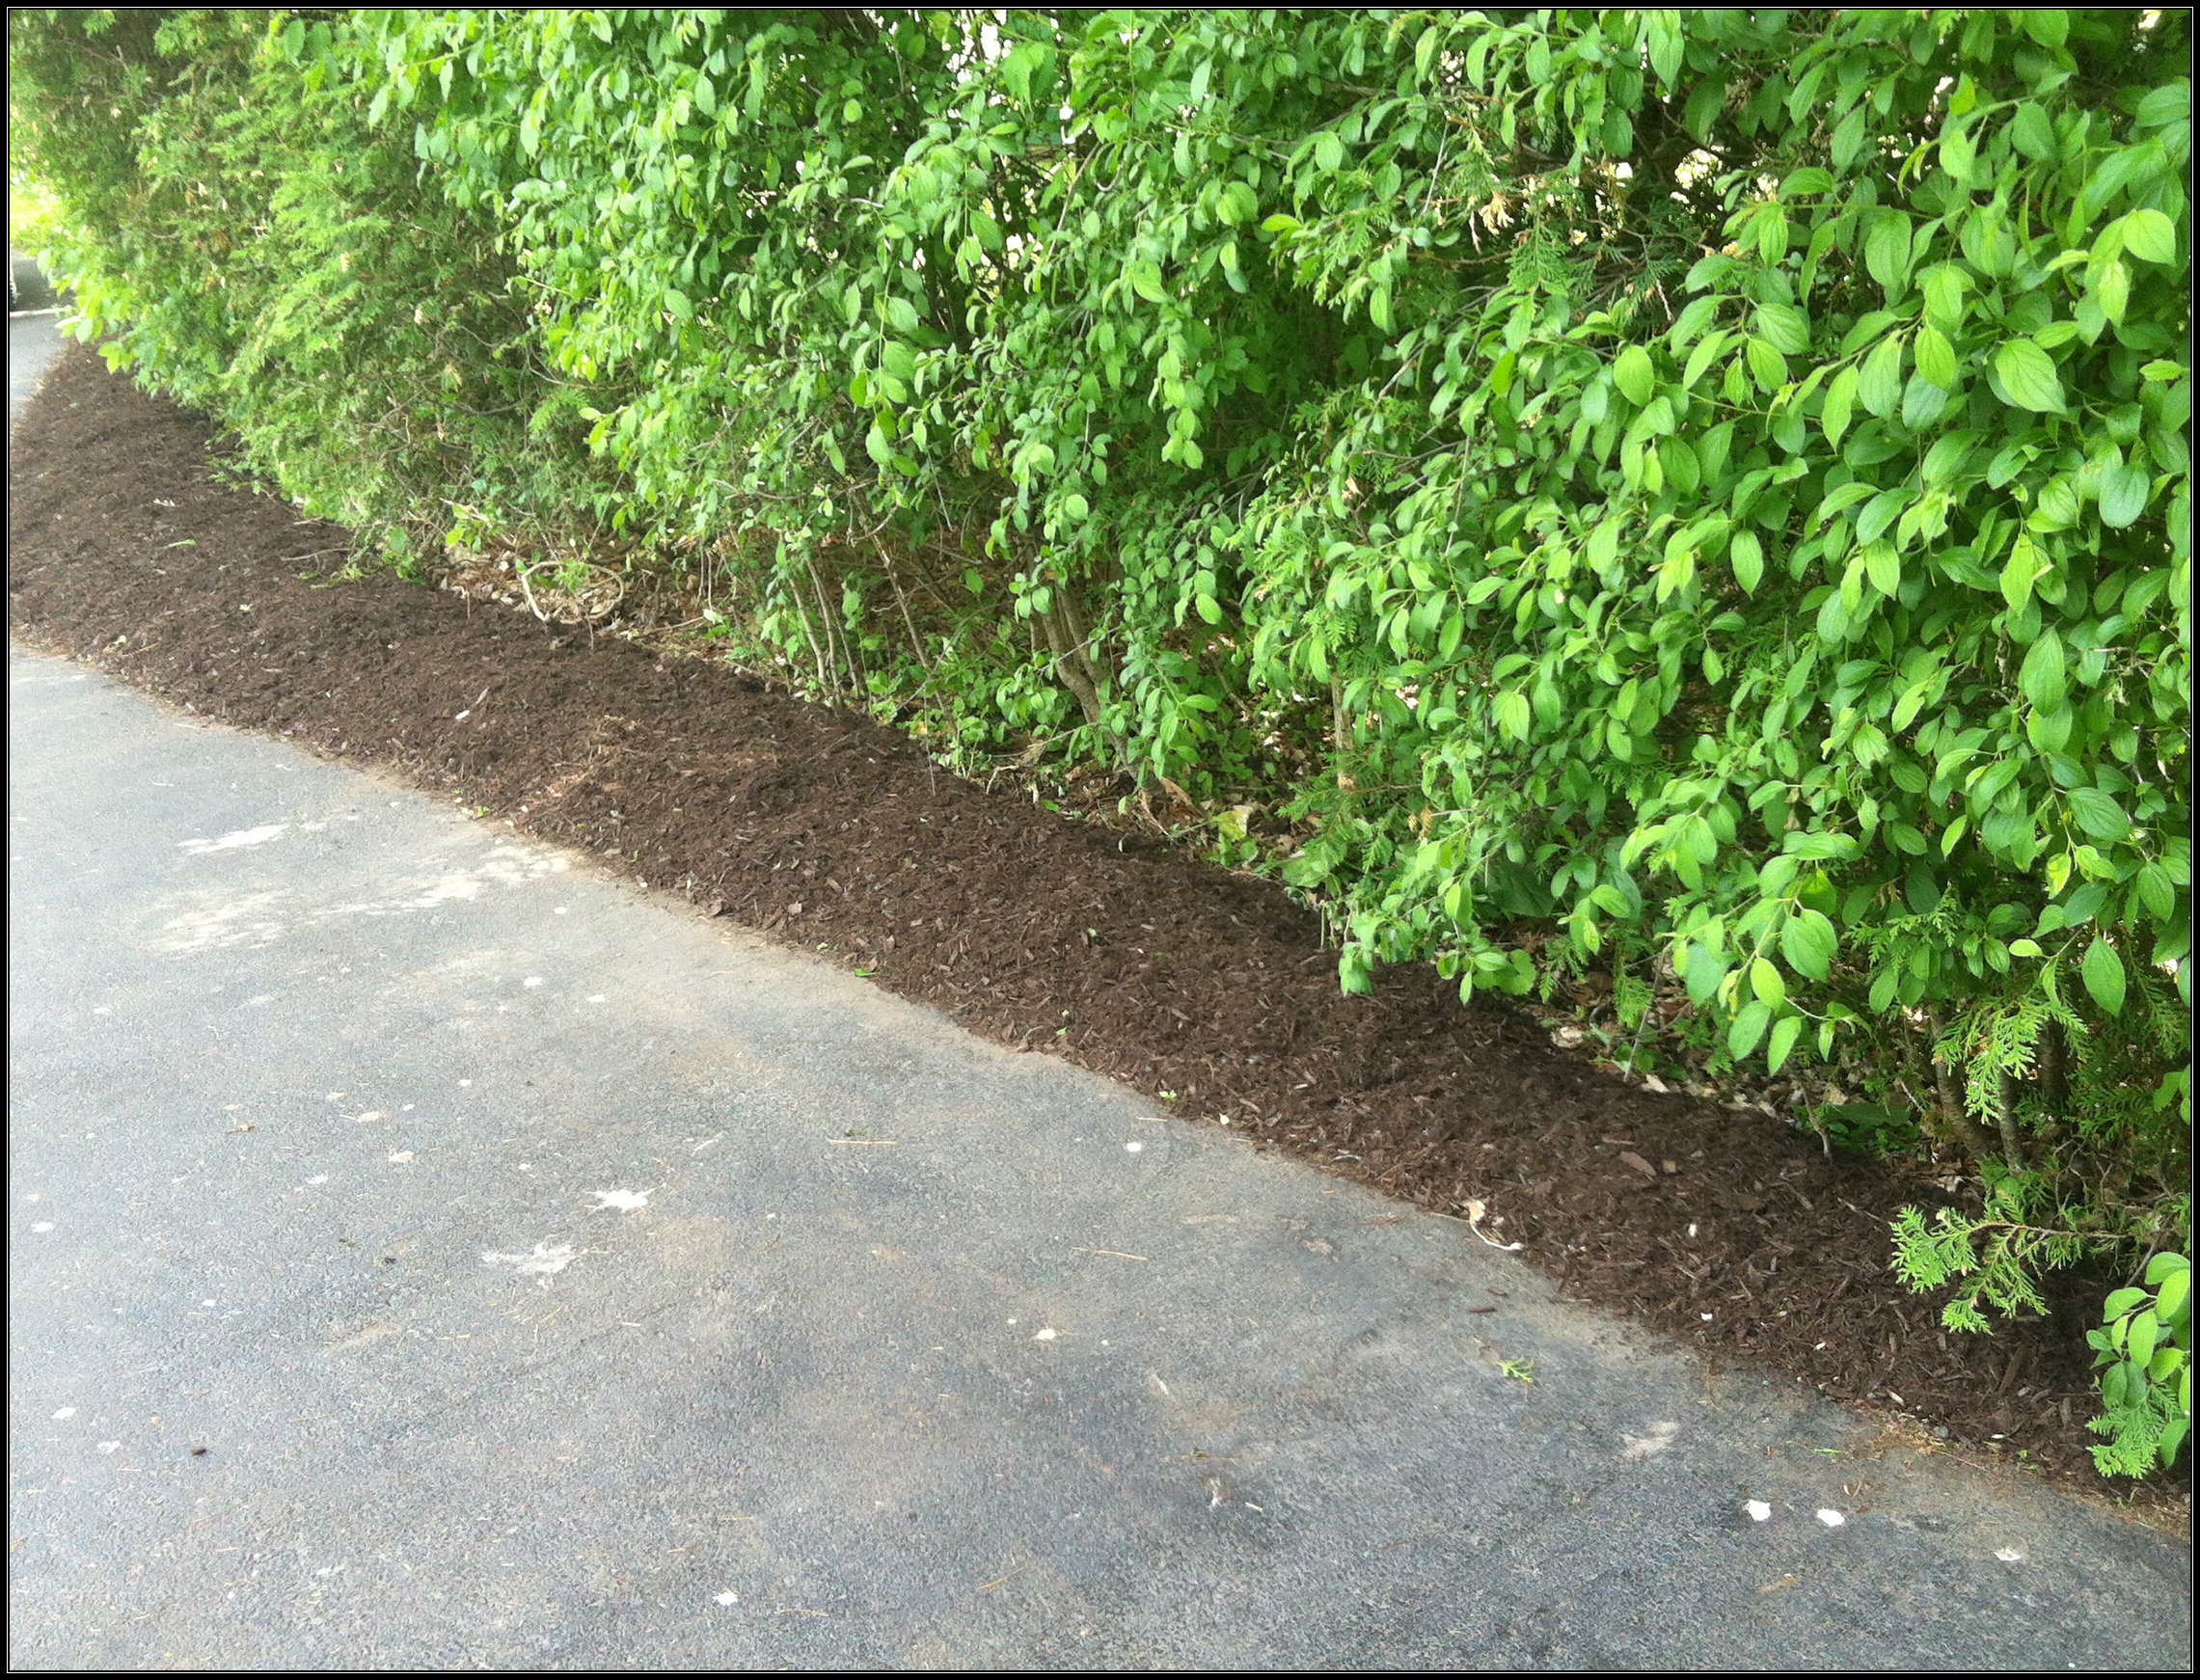 Driveway mulched